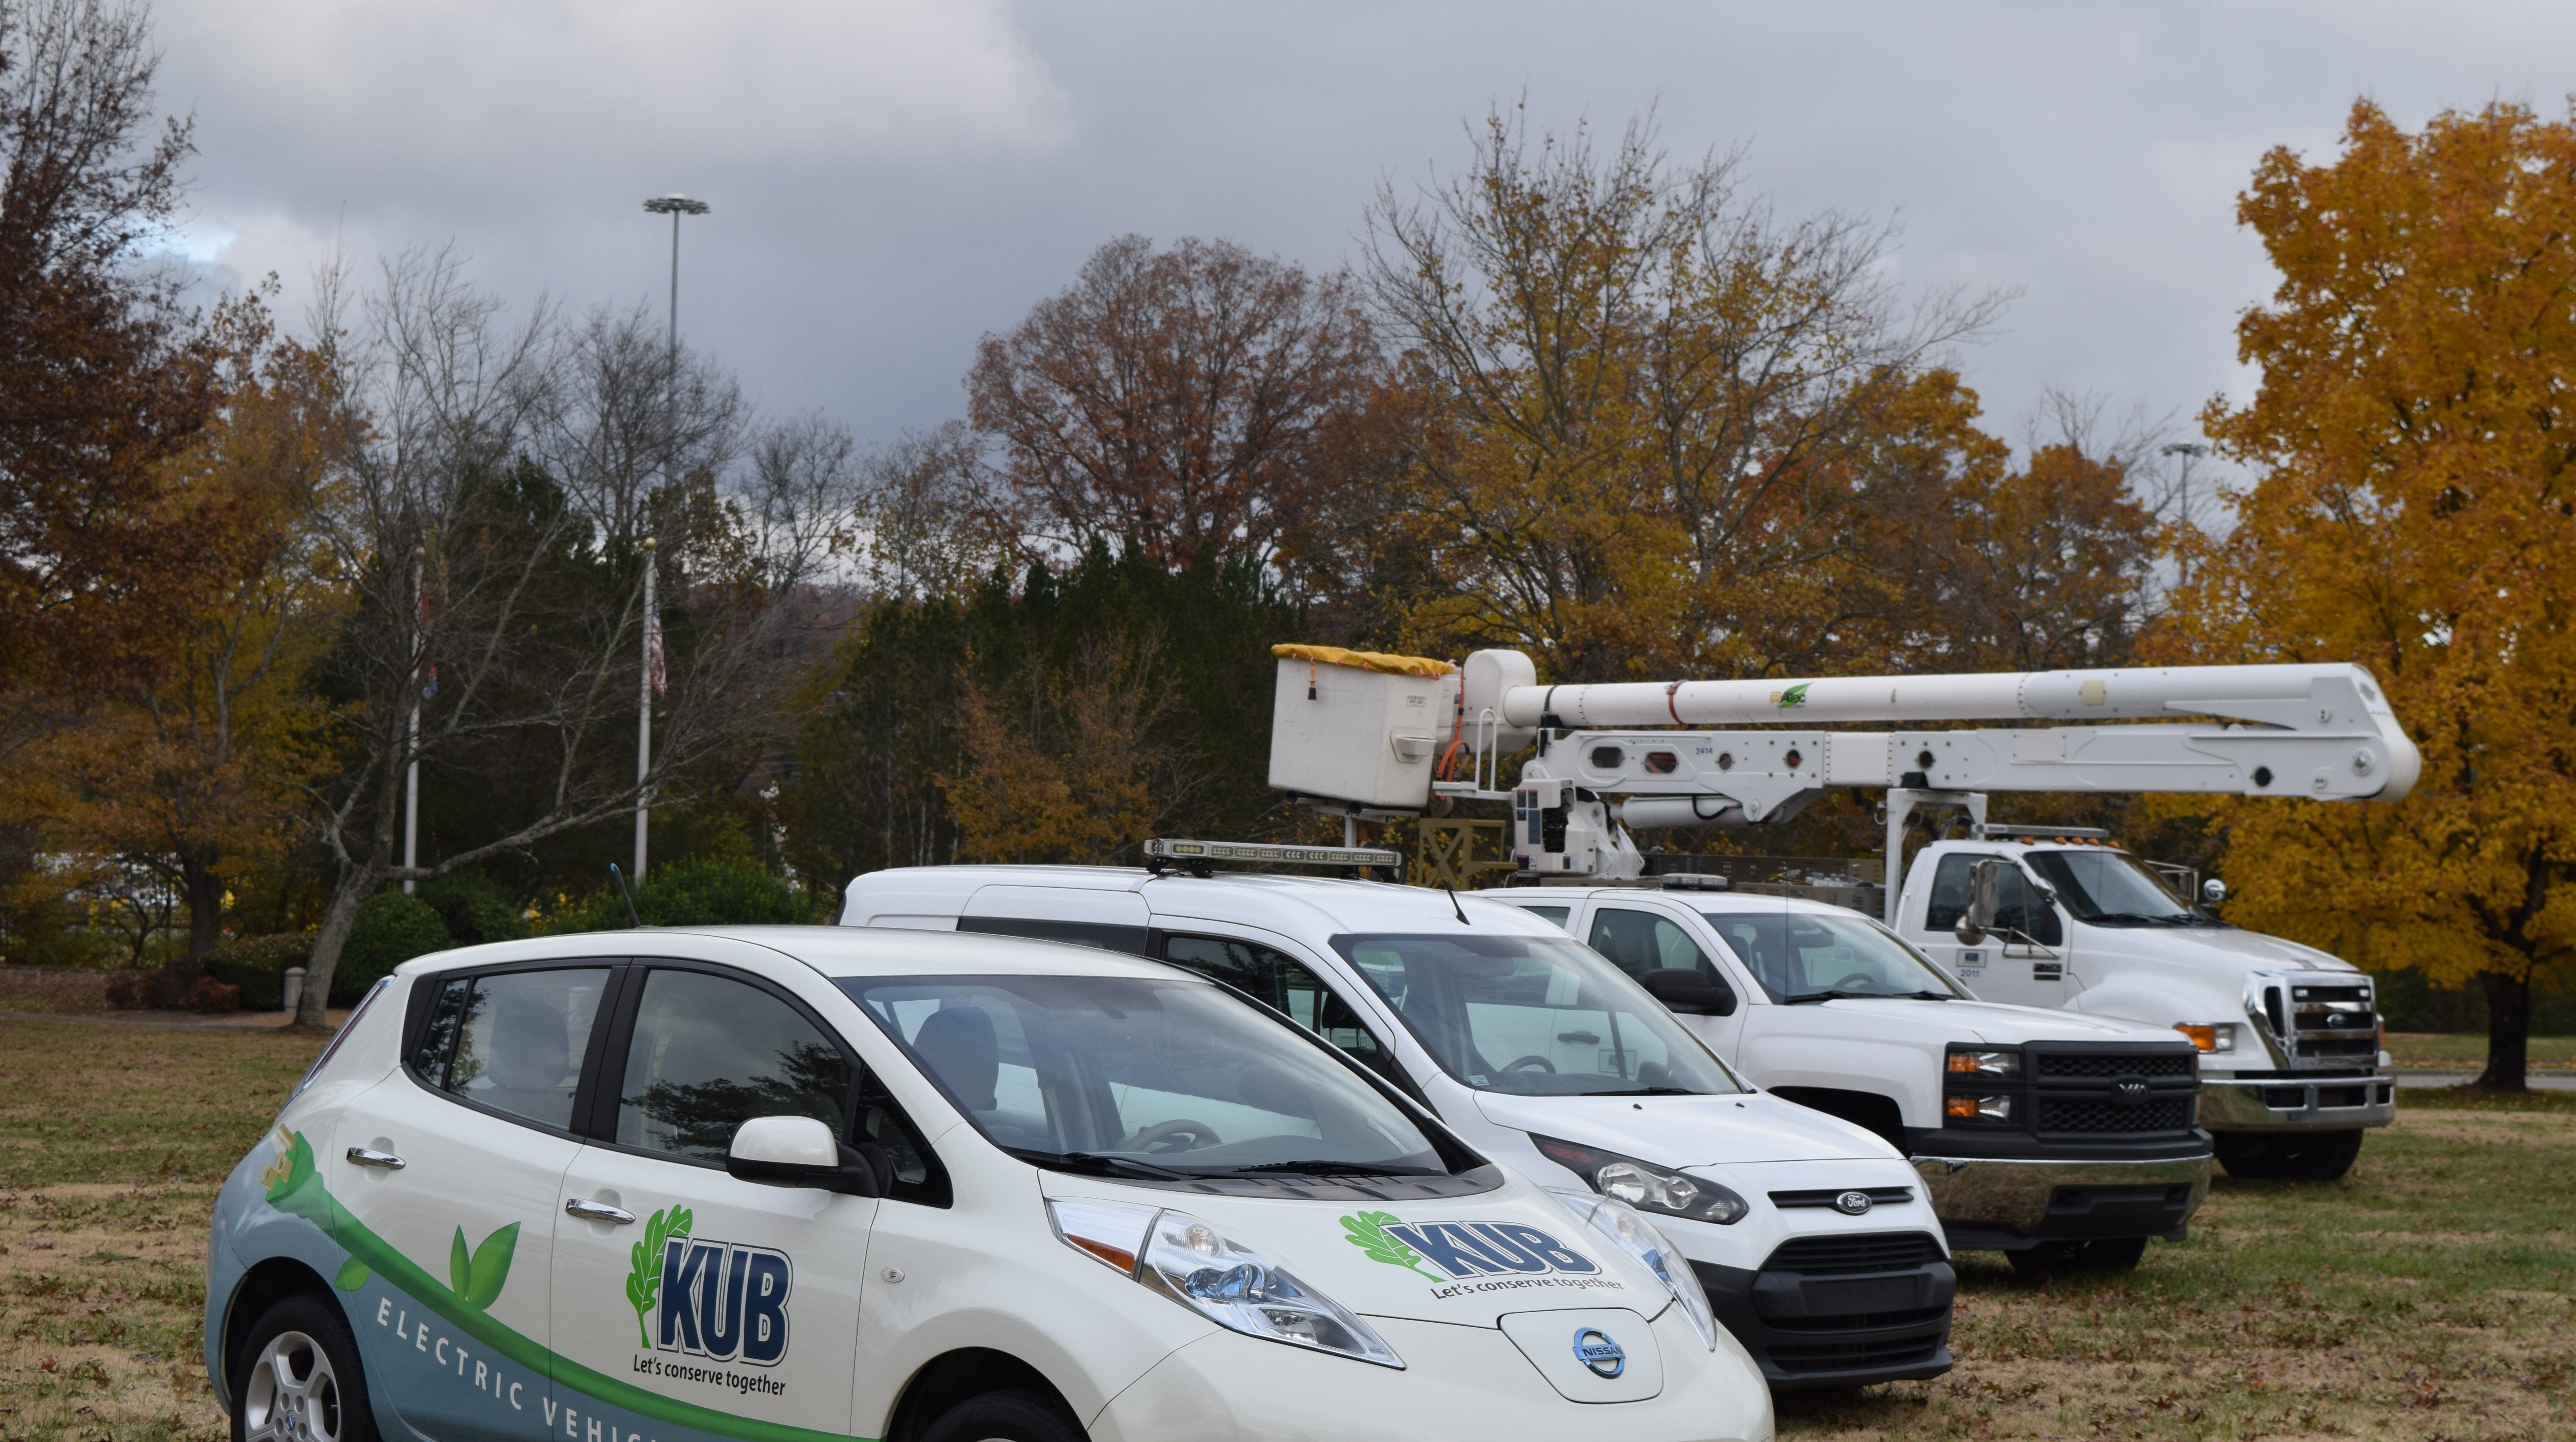 KUB's fleet includes vehicles powered by compressed natural gas, as well as electric and hybrid technology.